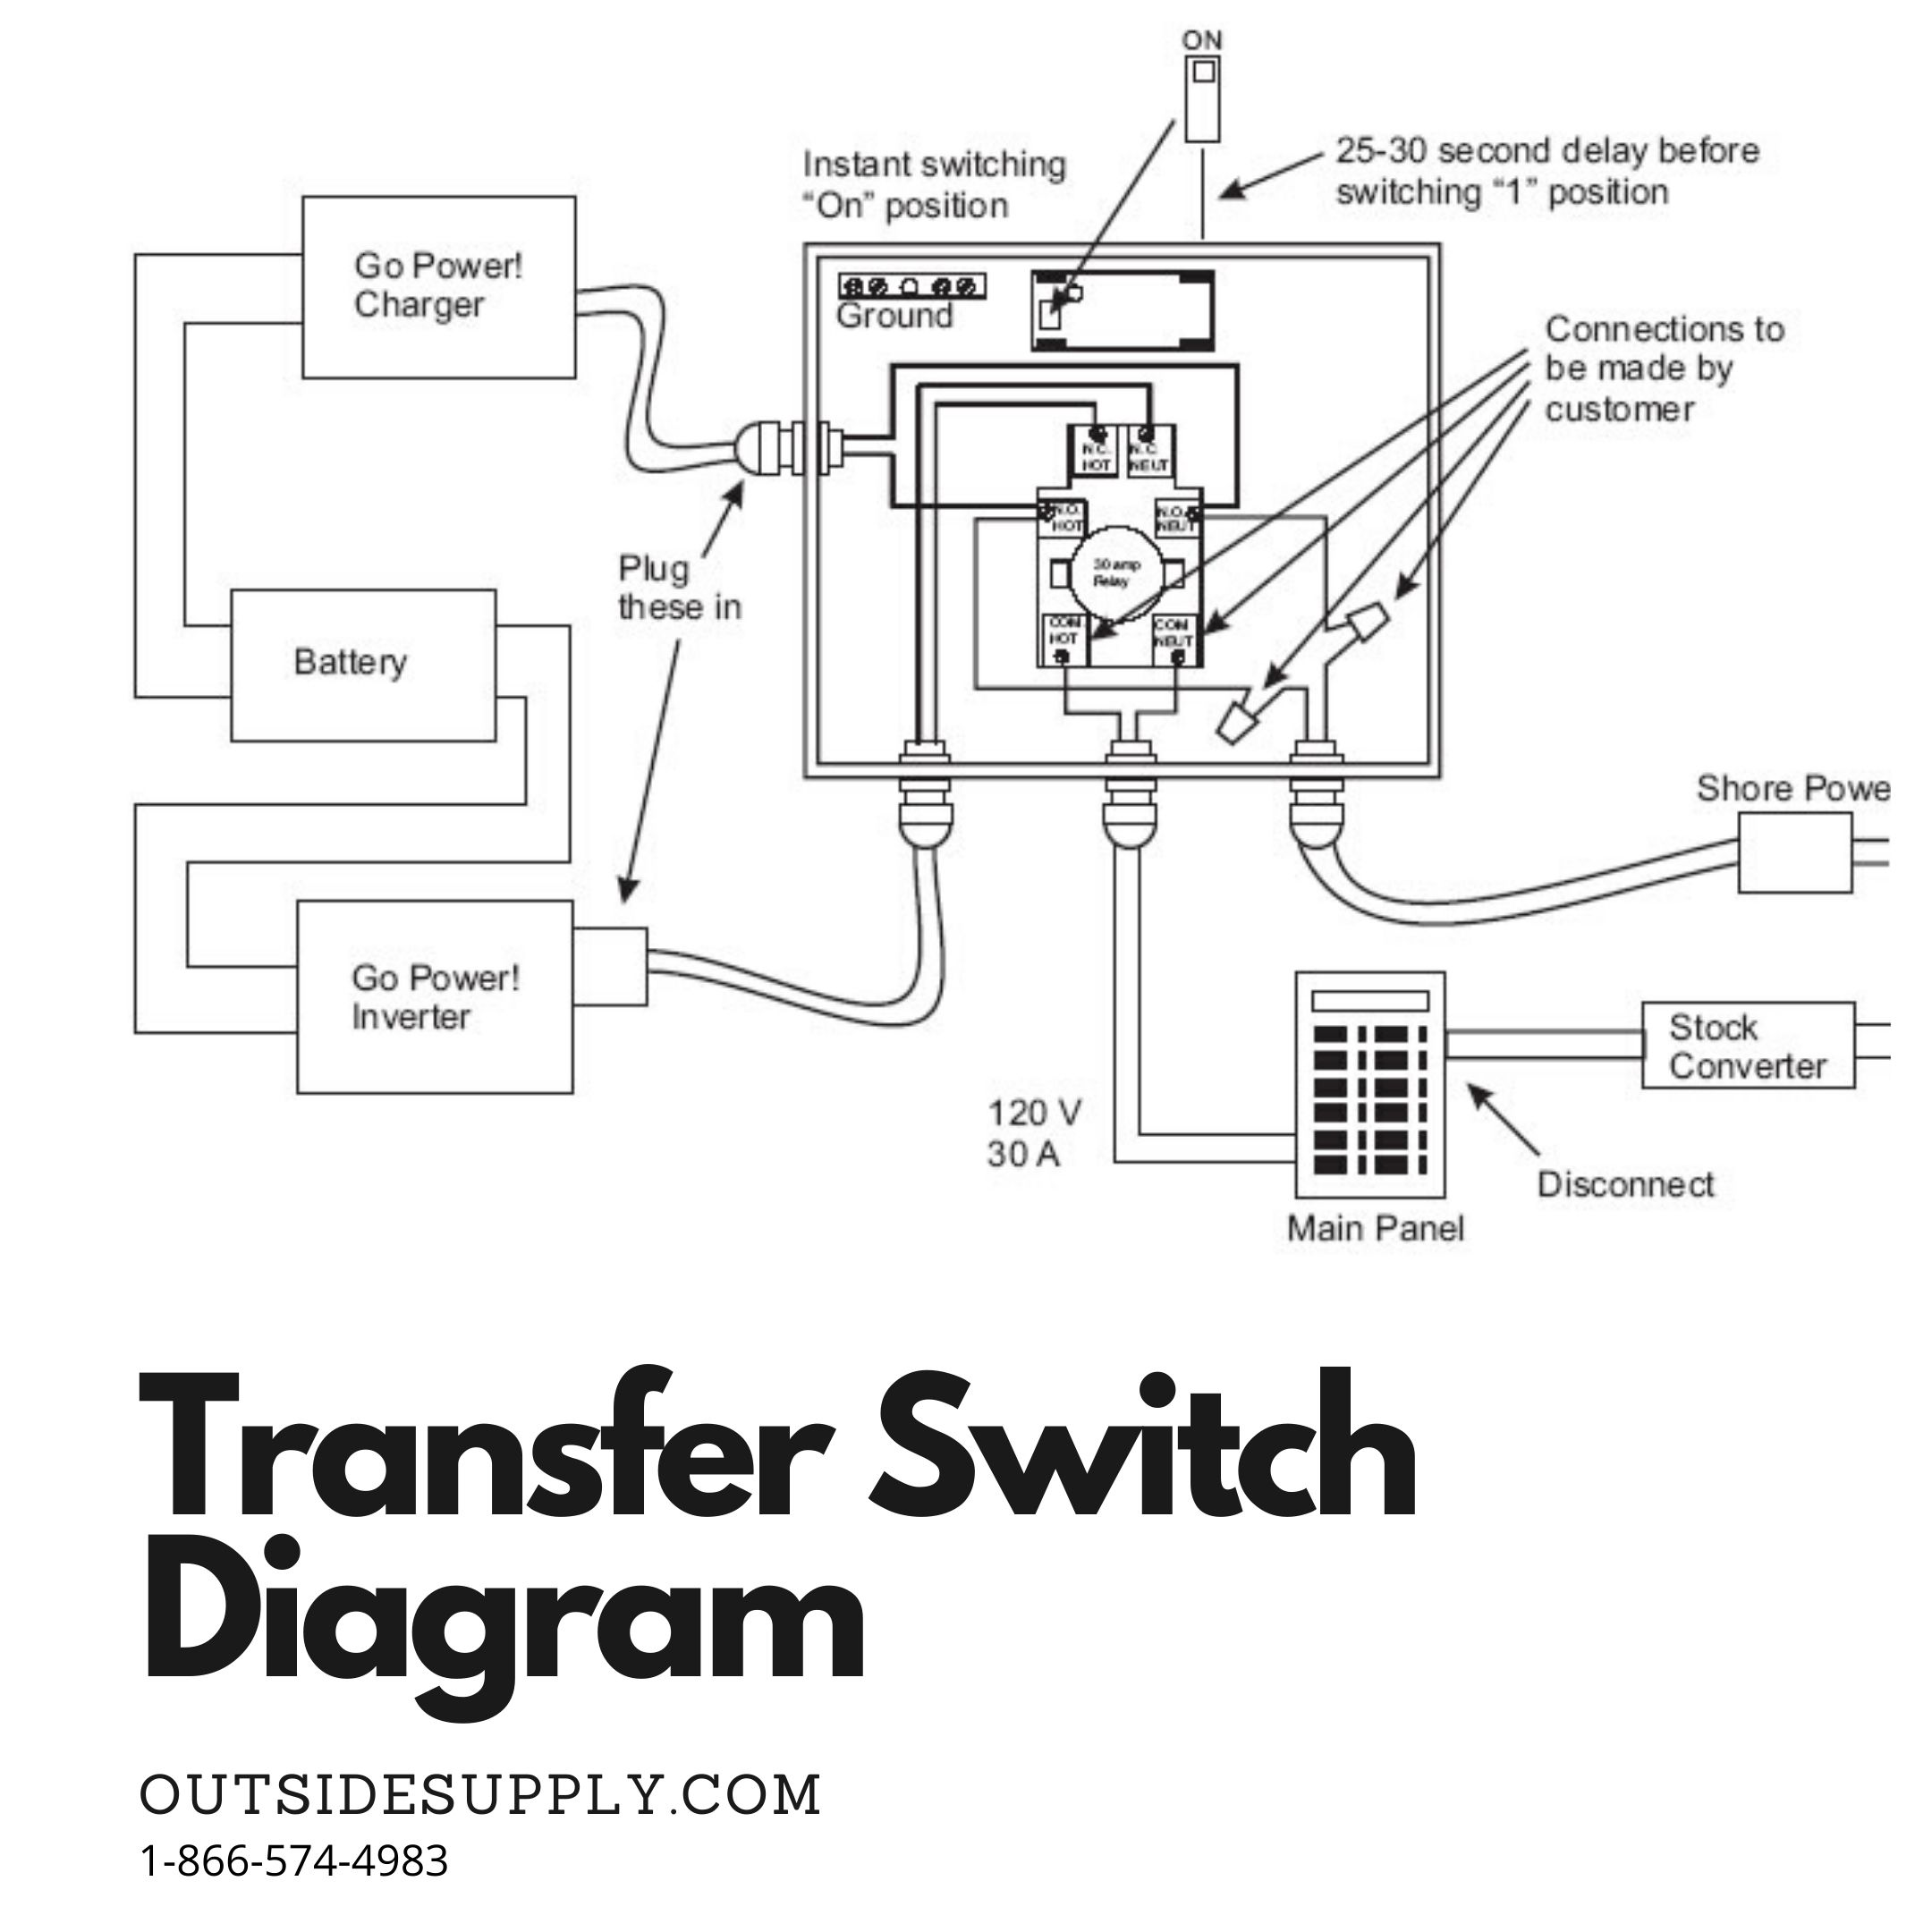 transfer switch wiring diagram hyundai excel rv schematic go power 30 amp automatic